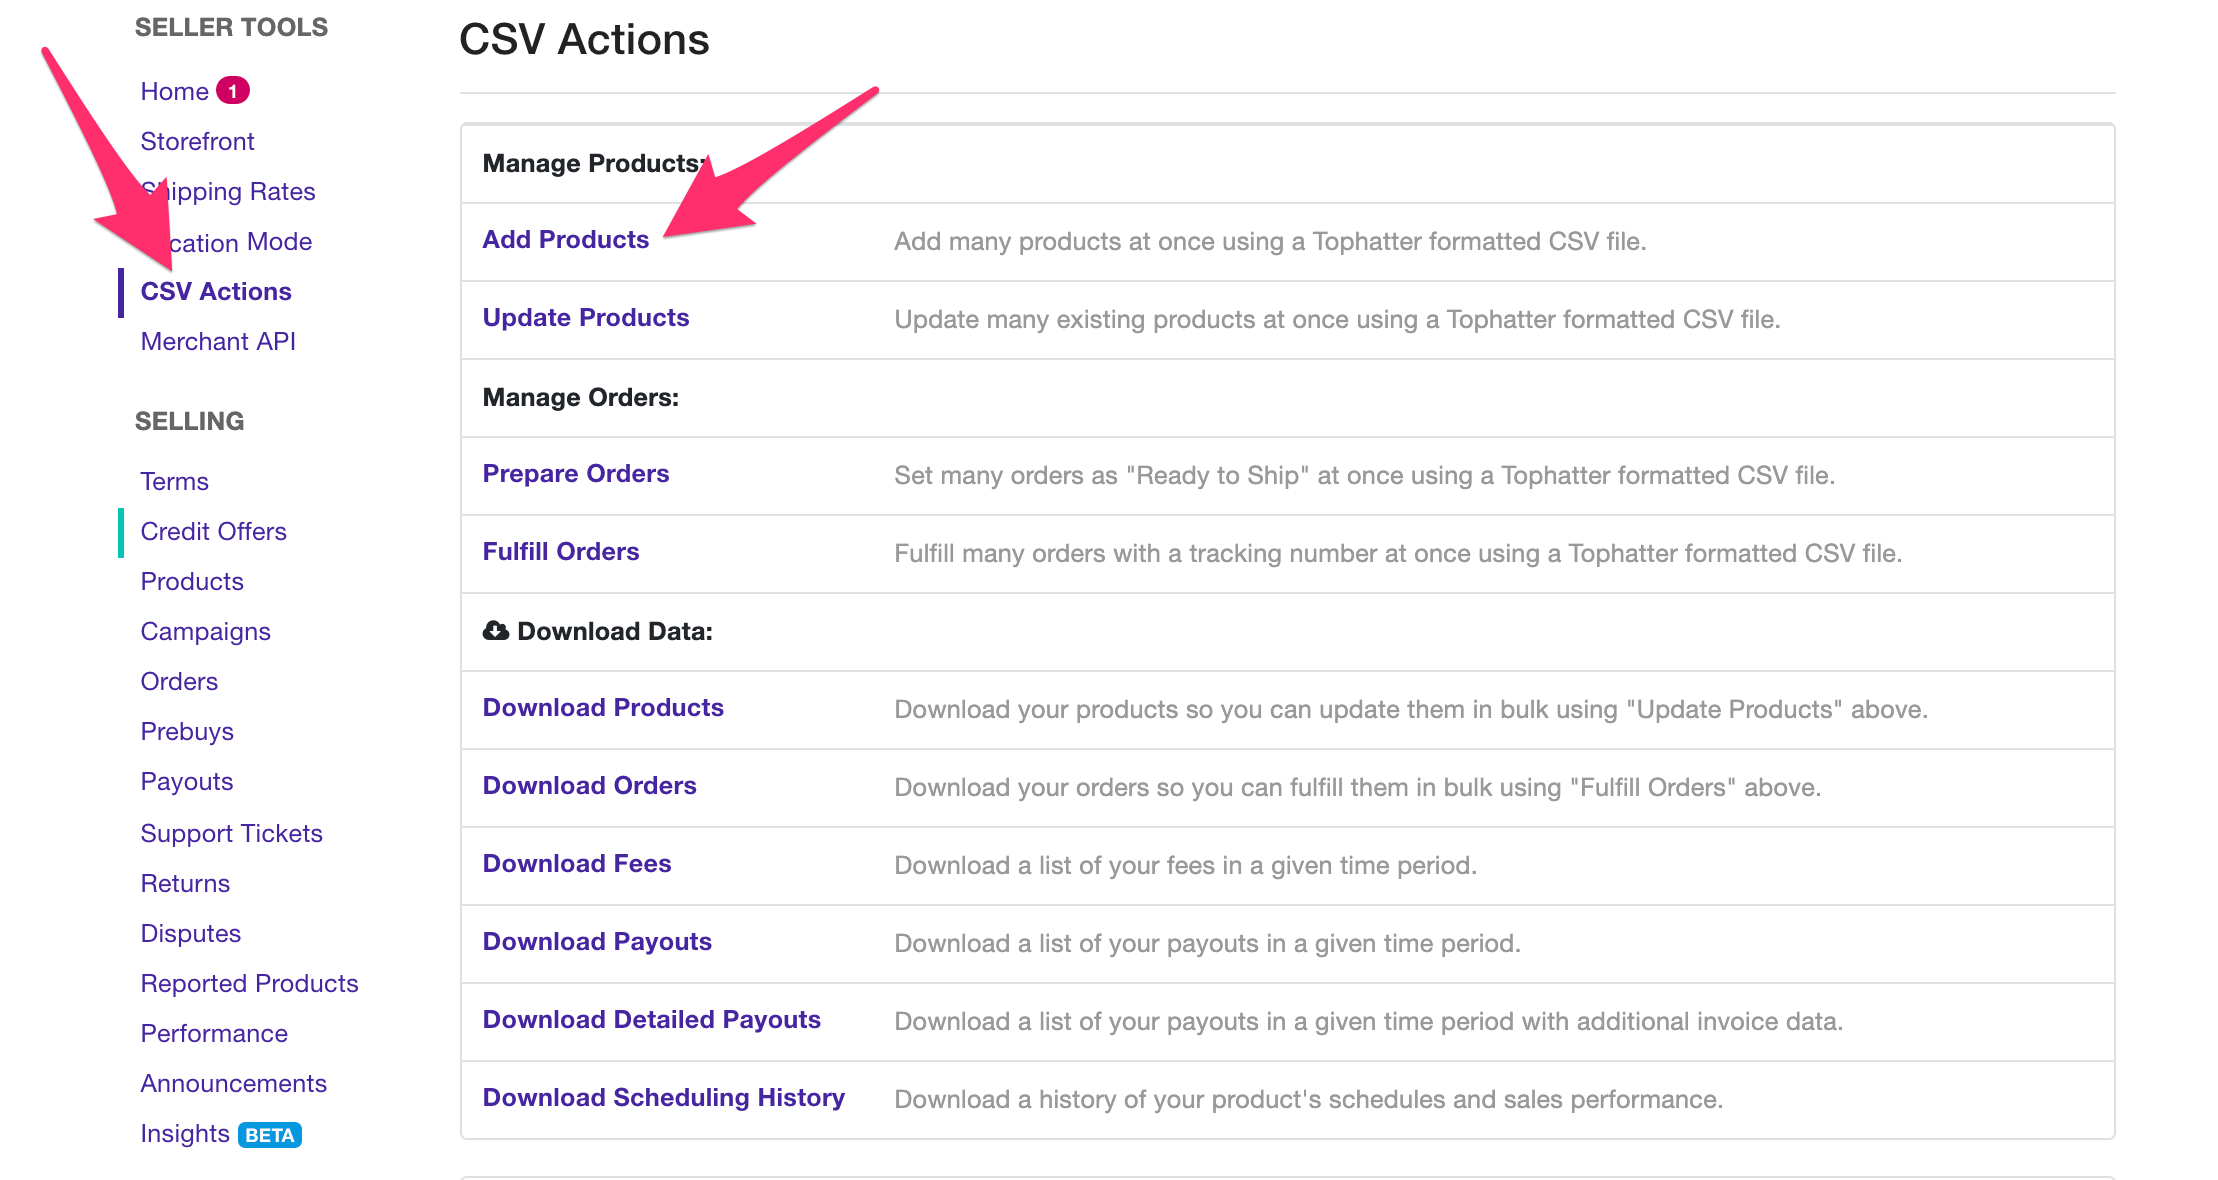 Tophatter Product CSV Actions